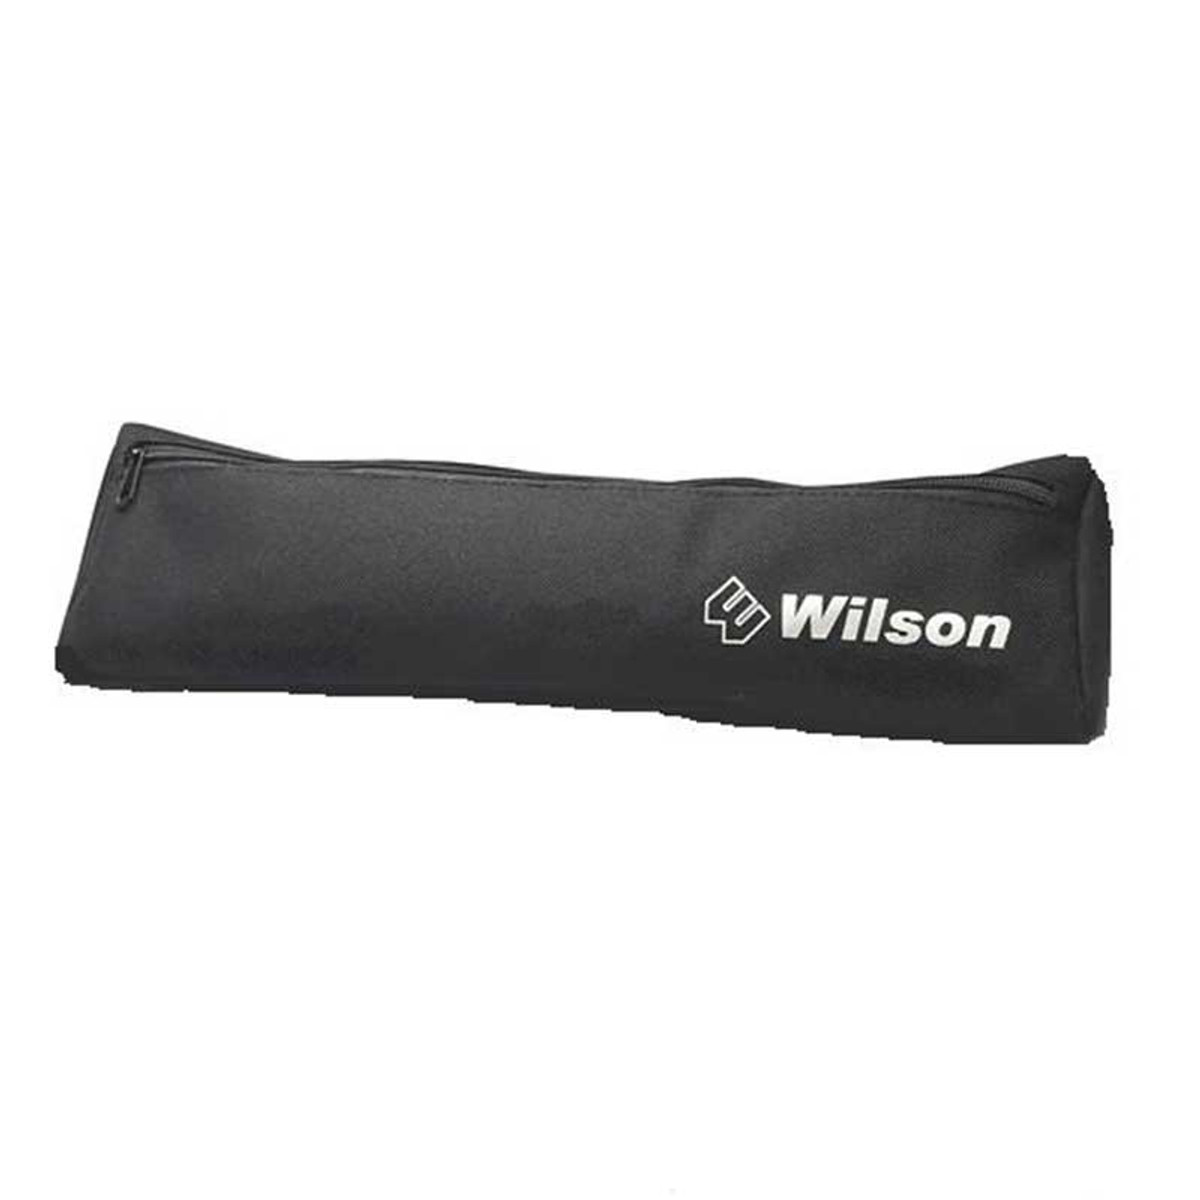 Wilson 859946 13 inch Mobile professional Zippered Carrying Pouch, good angle